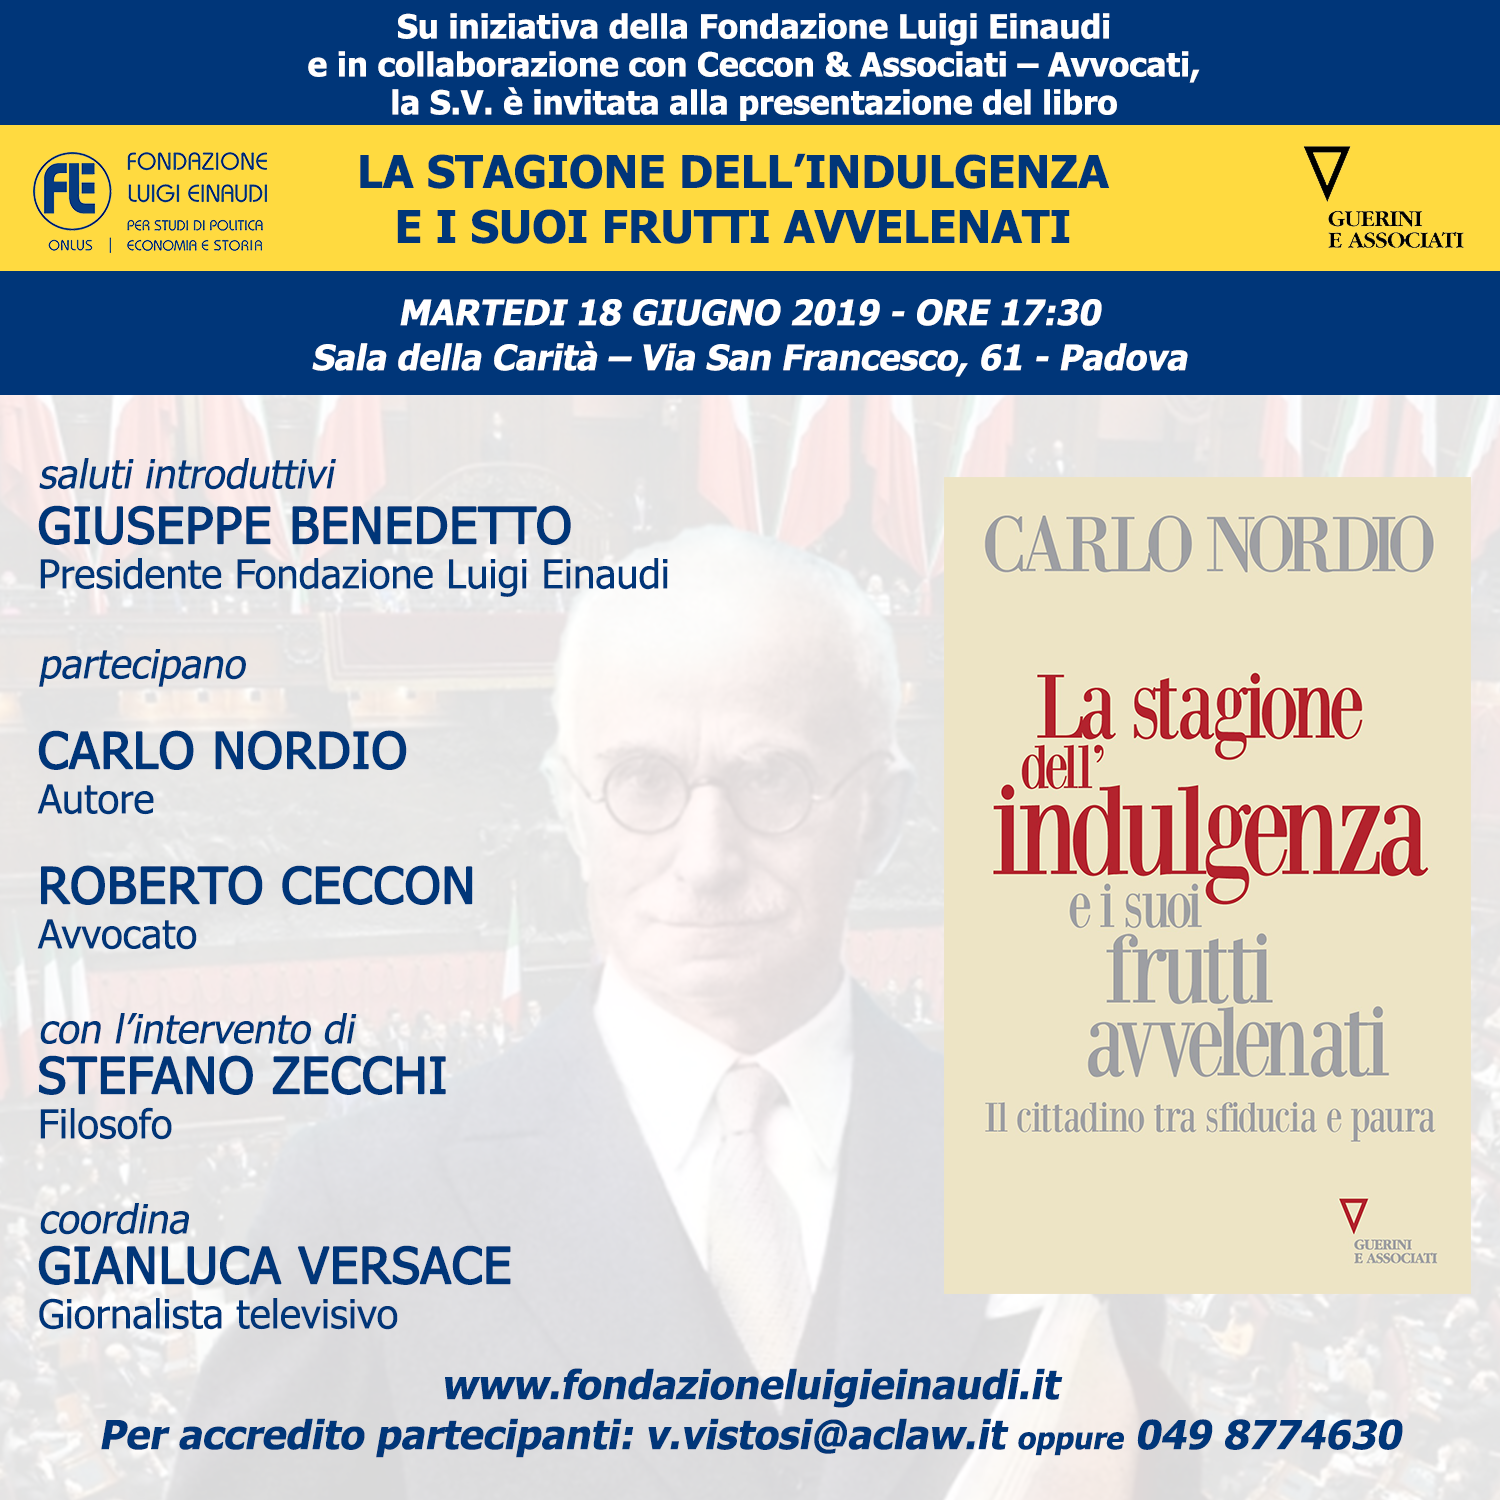 Stage in Veneto for the presentation of the book by Carlo Nordio